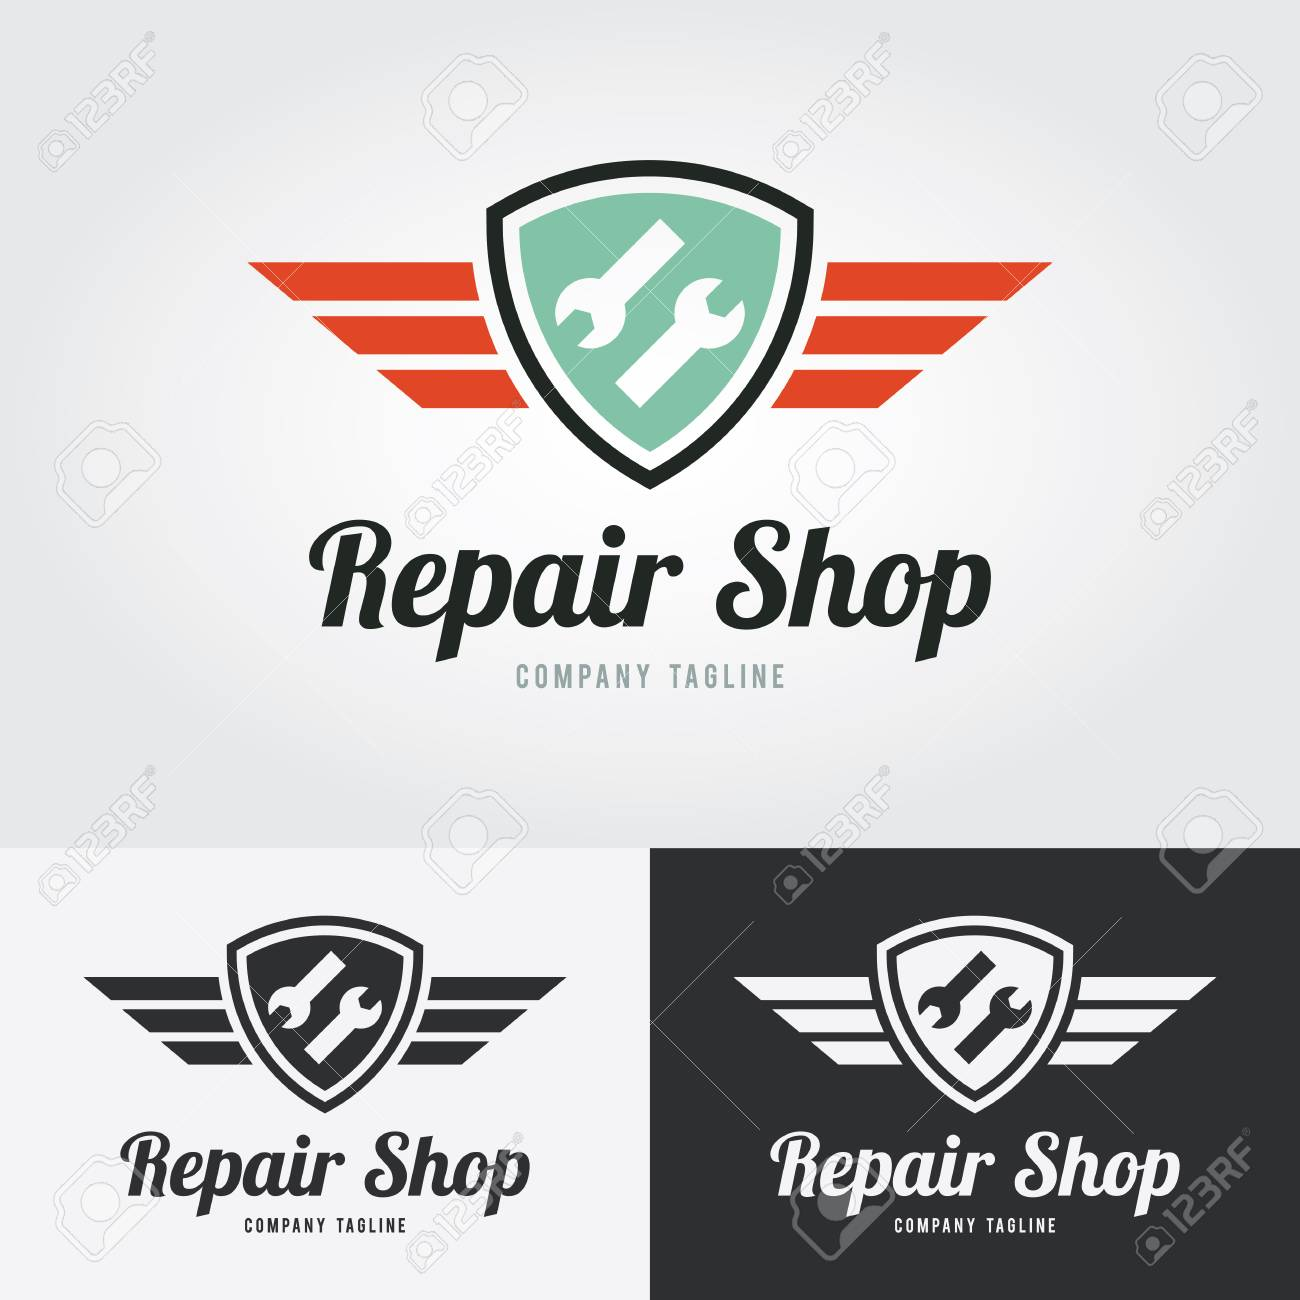 Repair Icon Repair Logo With Shield And Wings Vector Illustration